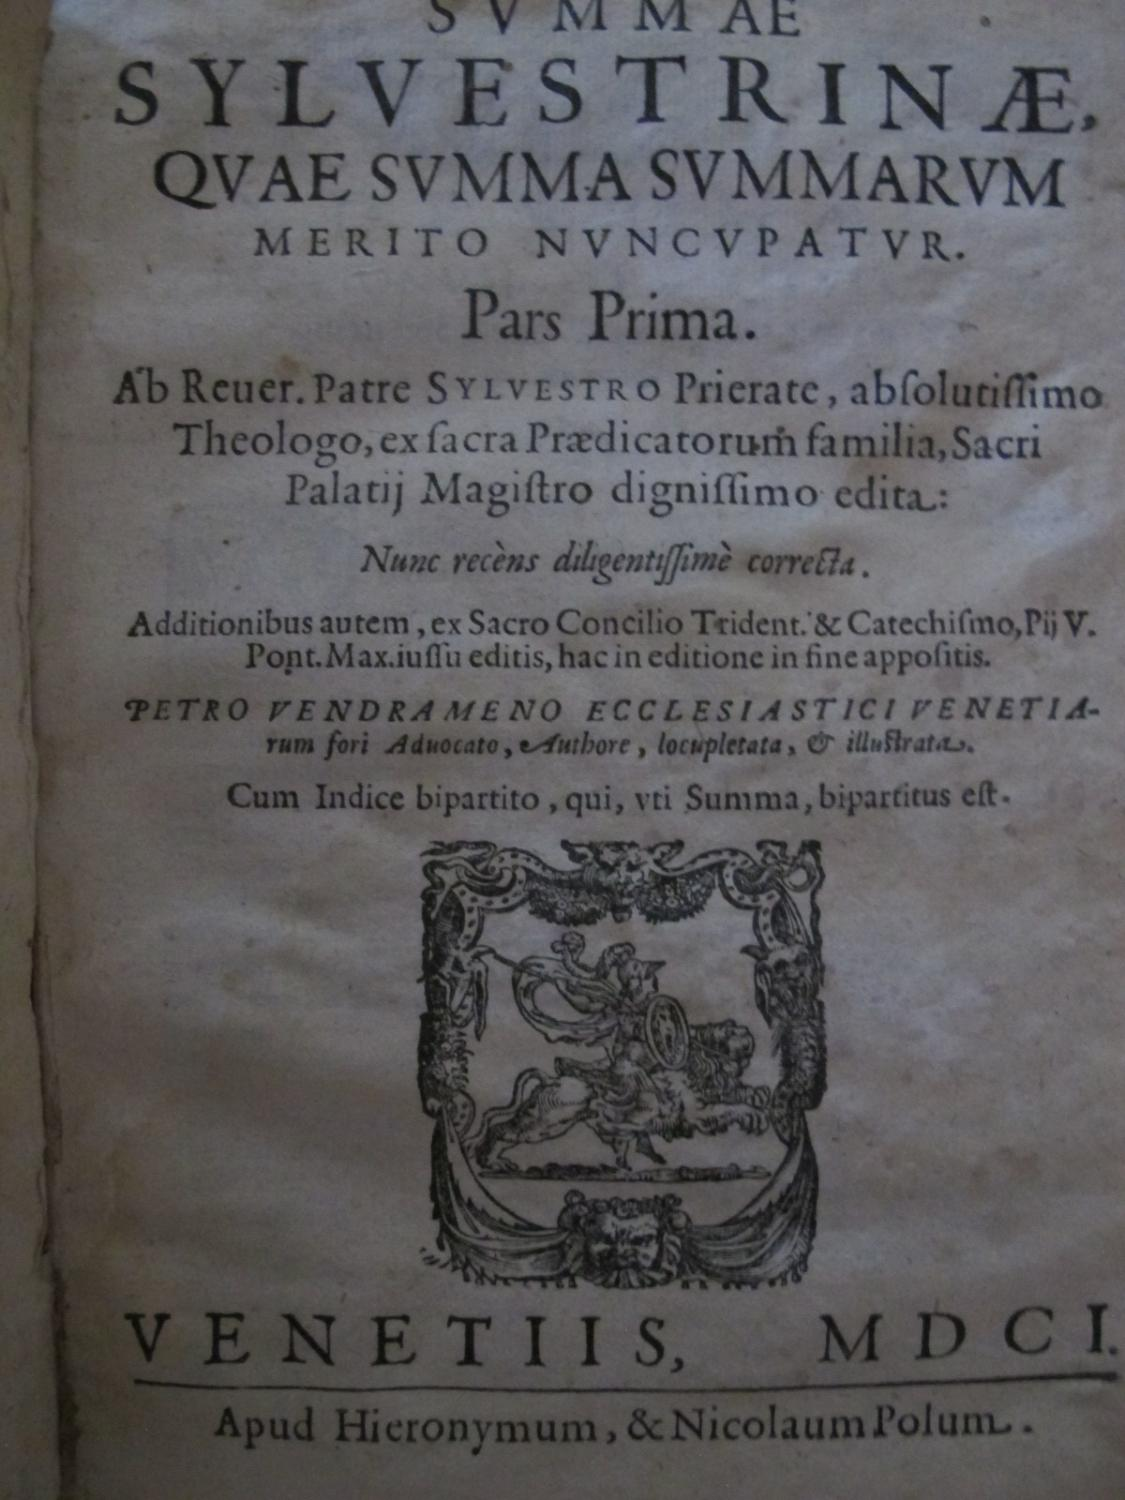 viaLibri ~ (1264578).....Rare Books from 1601